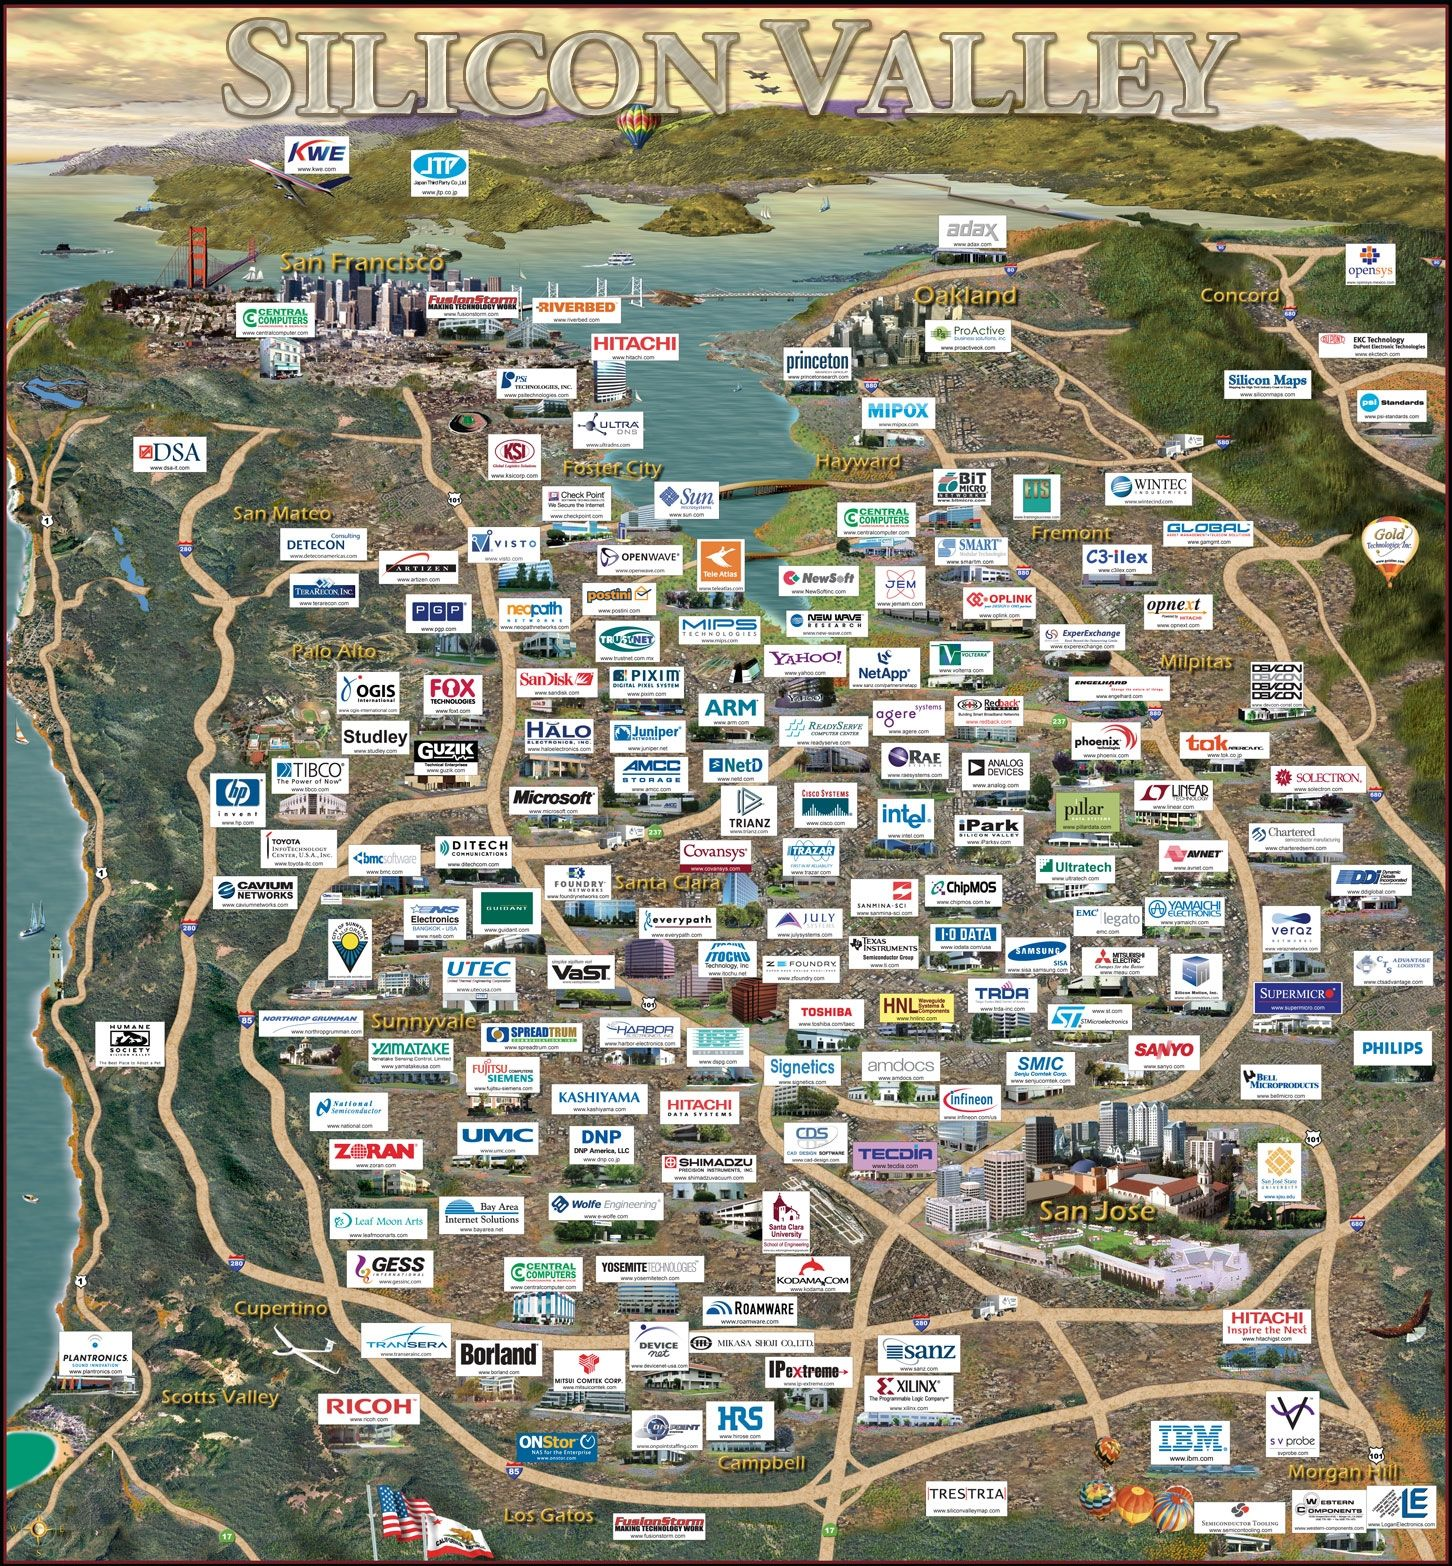 Silicon Valley was only mentioned in maps